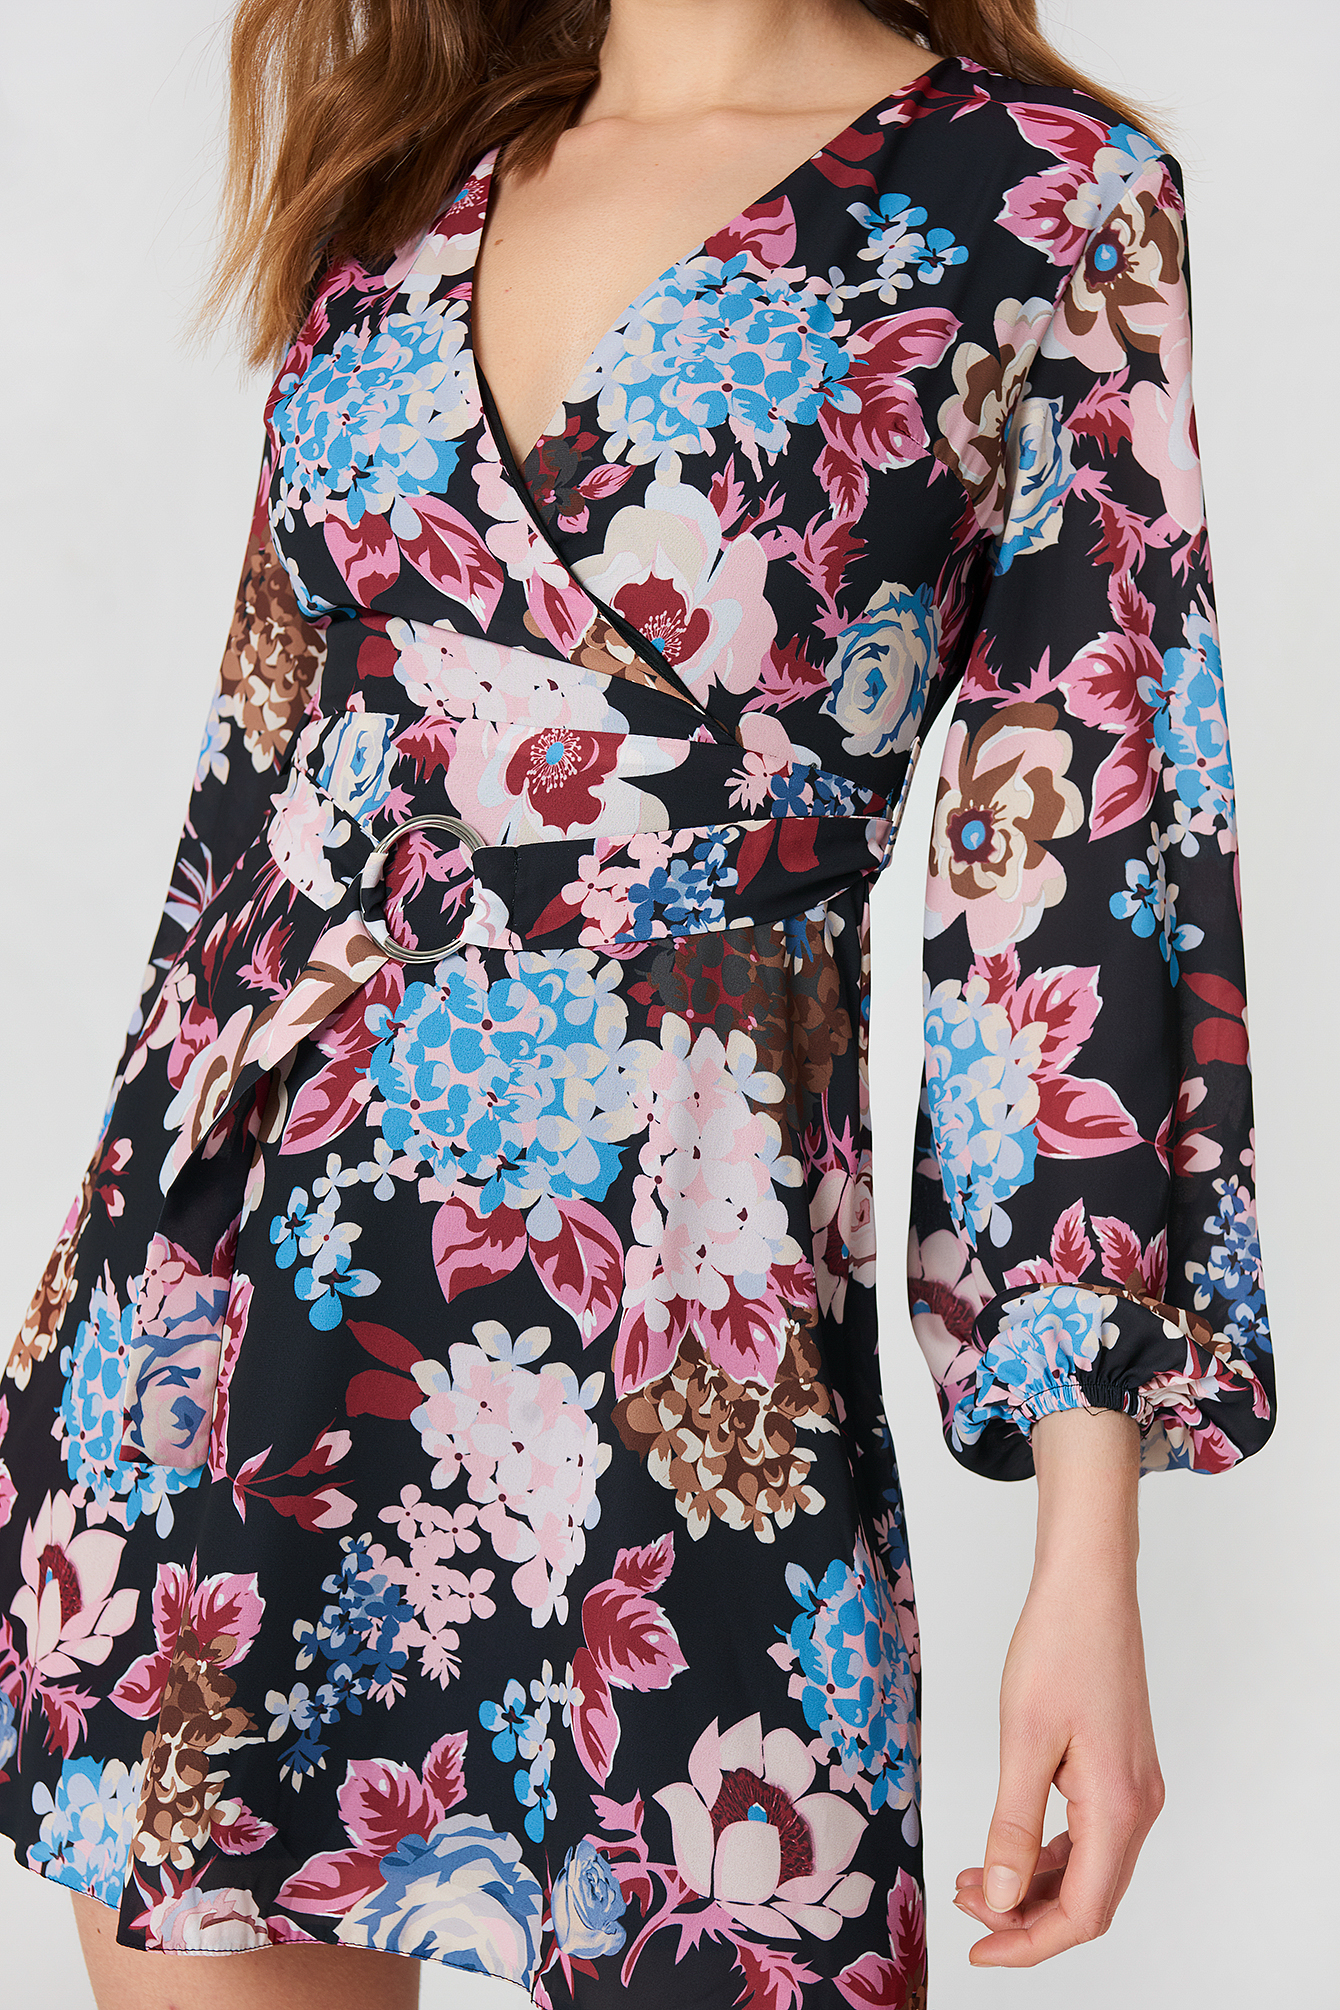 Buckle Detail Floral Dress NA-KD.COM